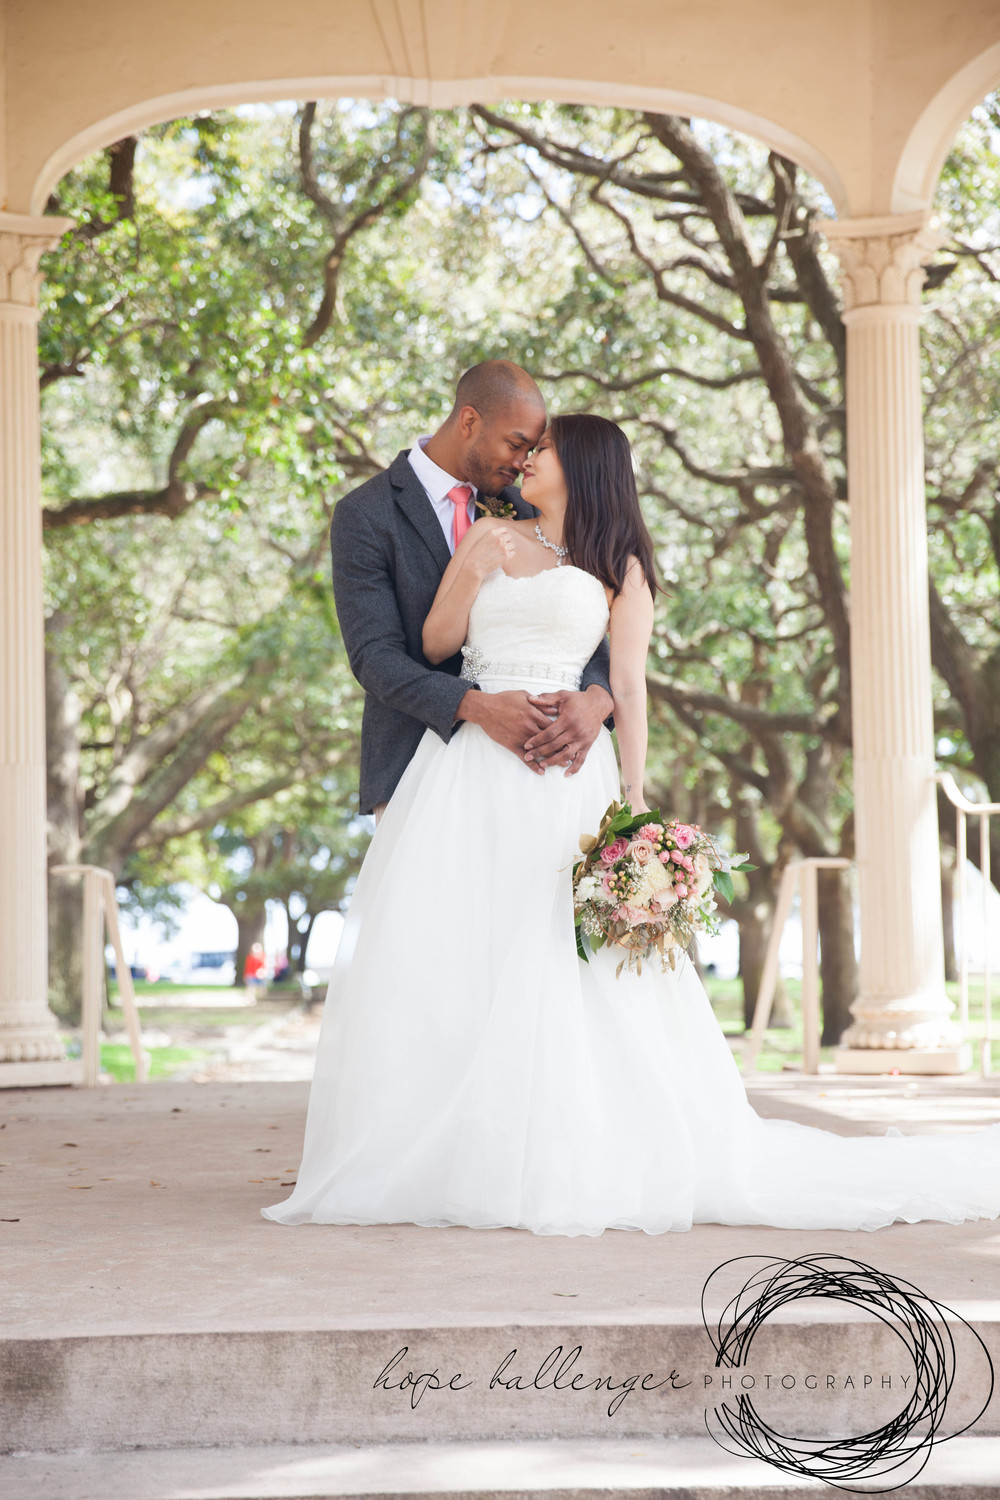 White Point Gardens wedding elopement in Charleston, SC by Hope Ballenger Photography